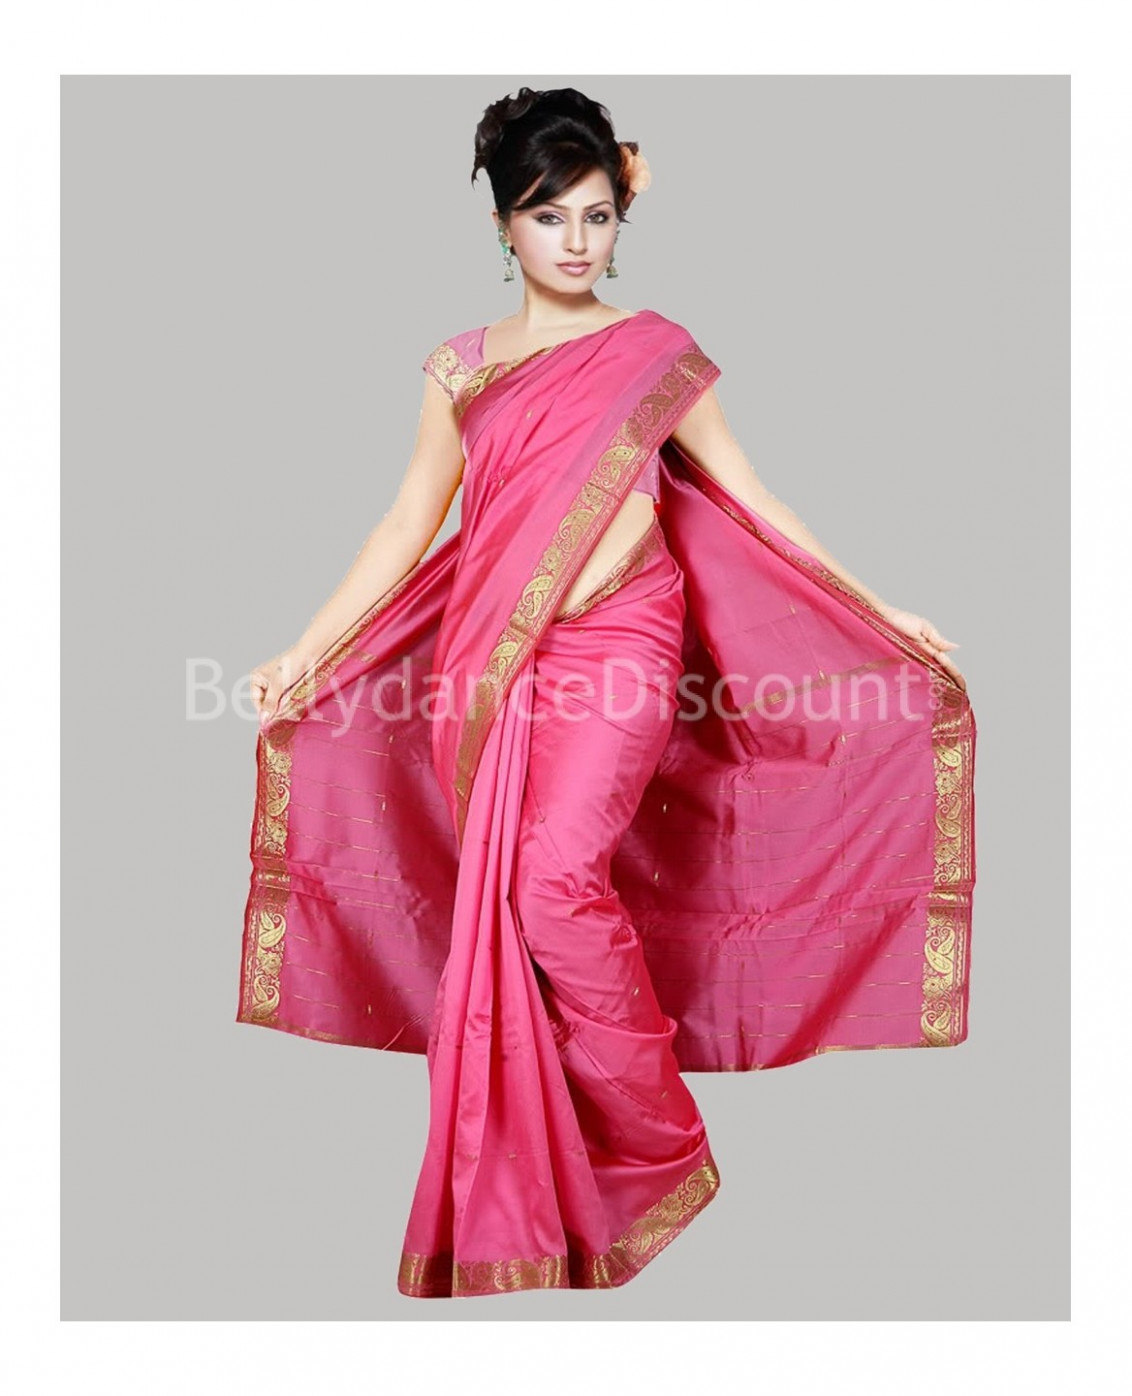 Pink Bollywood dance Saree - BellydanceDiscount.com